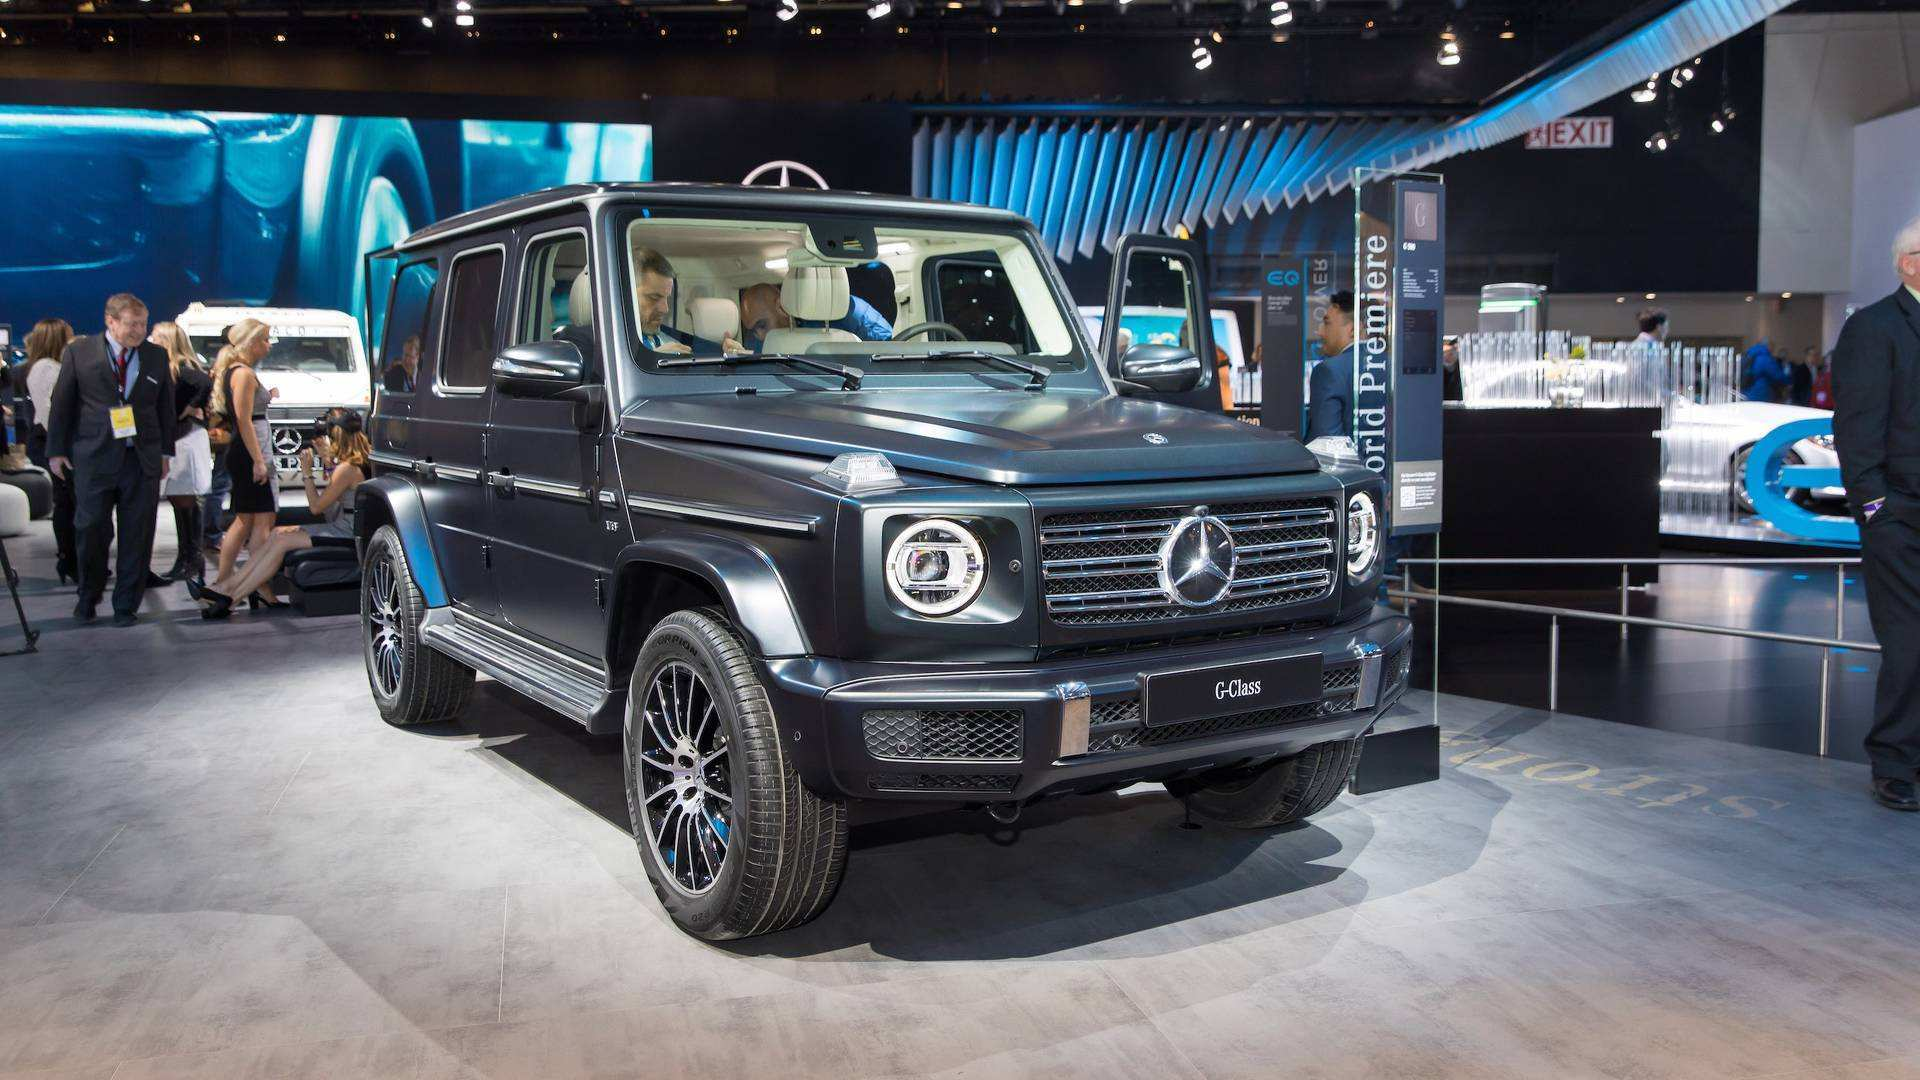 25 Great 2019 Mercedes G Wagon For Sale Price Performance with 2019 Mercedes G Wagon For Sale Price